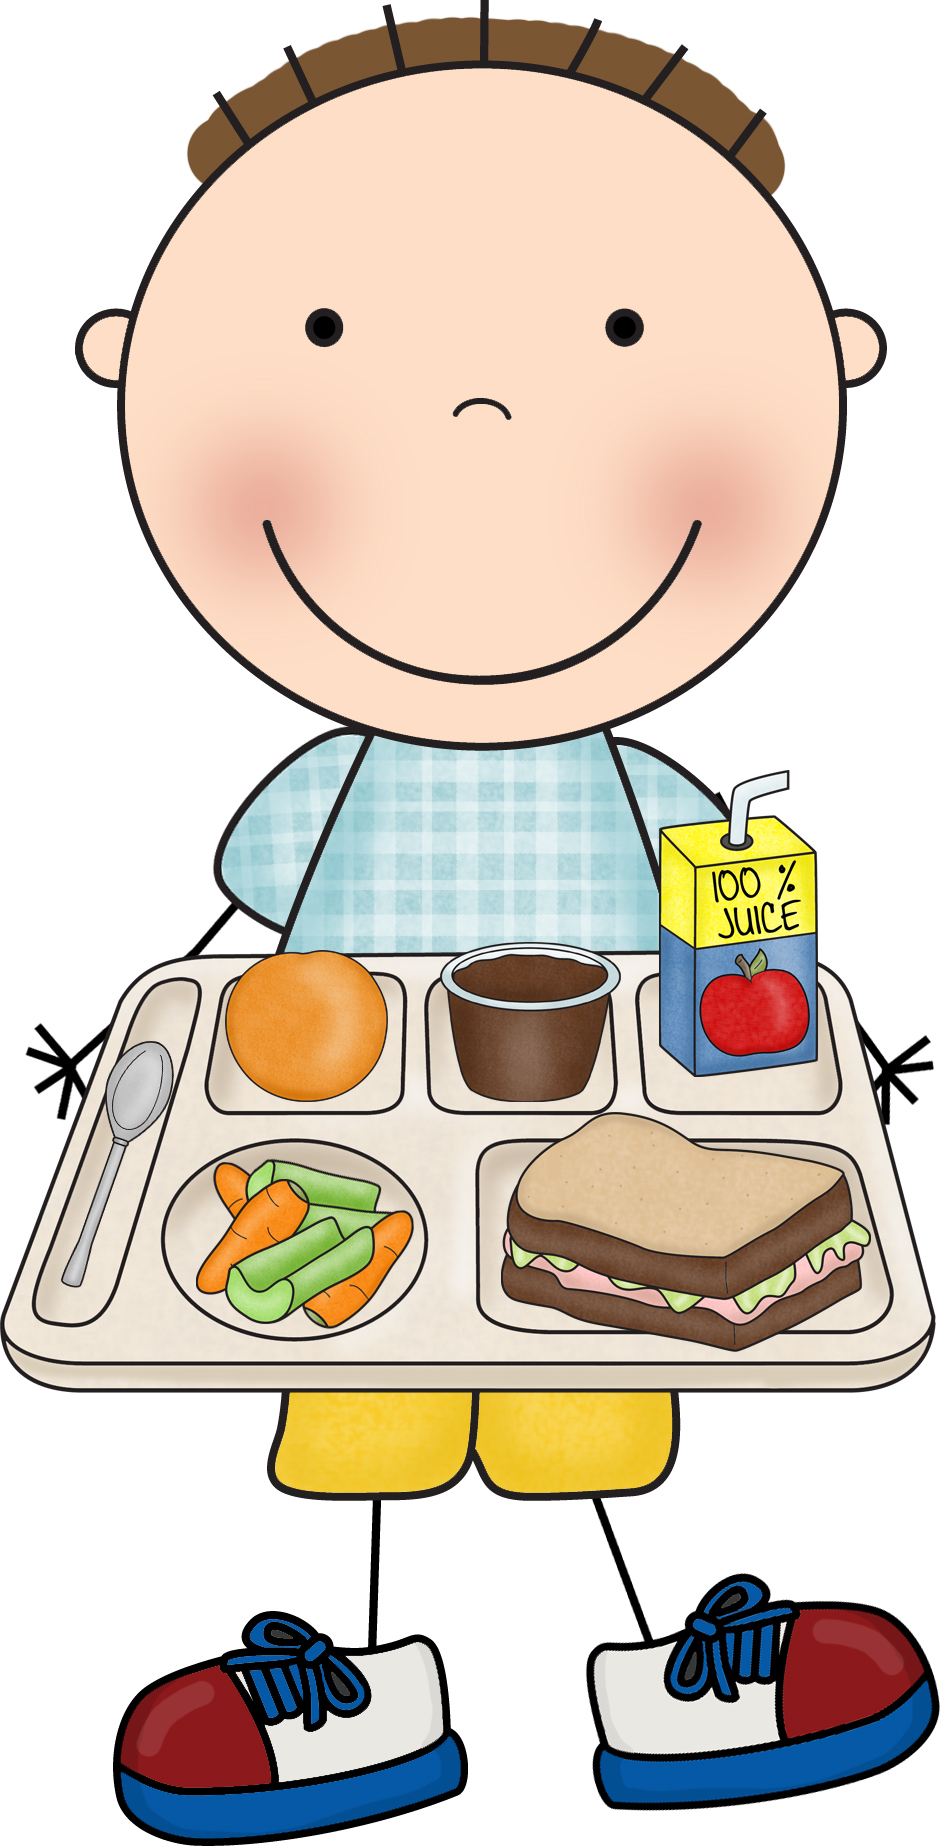 Cafeteria free download best. Lunch clipart school lunch